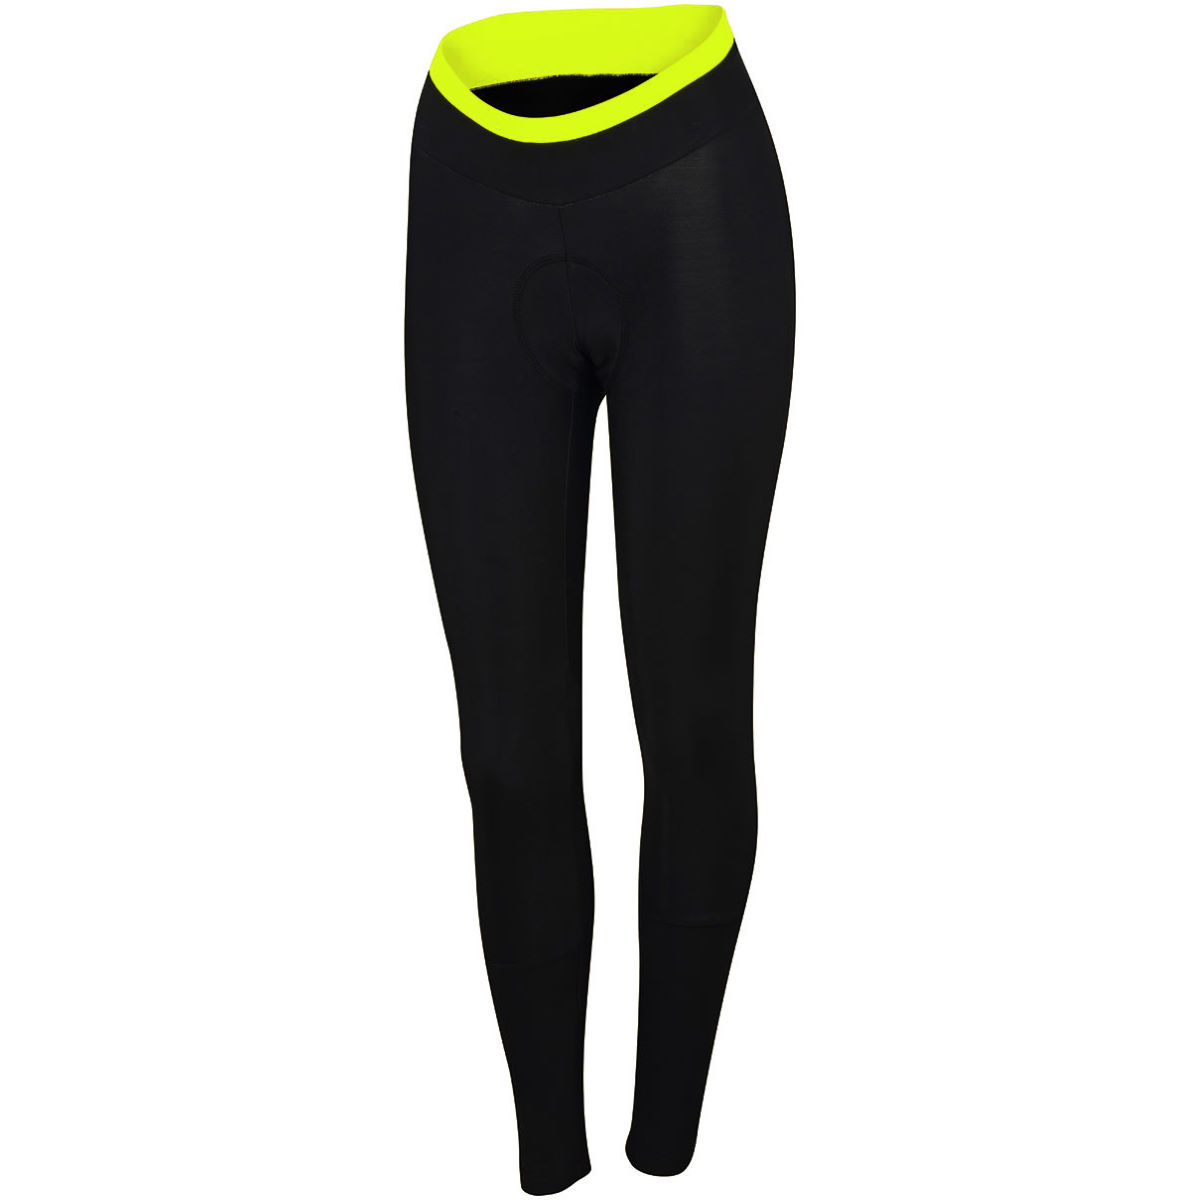 Cuissard long Femme Sportful Luna Thermal - L Black/Yellow Fluo